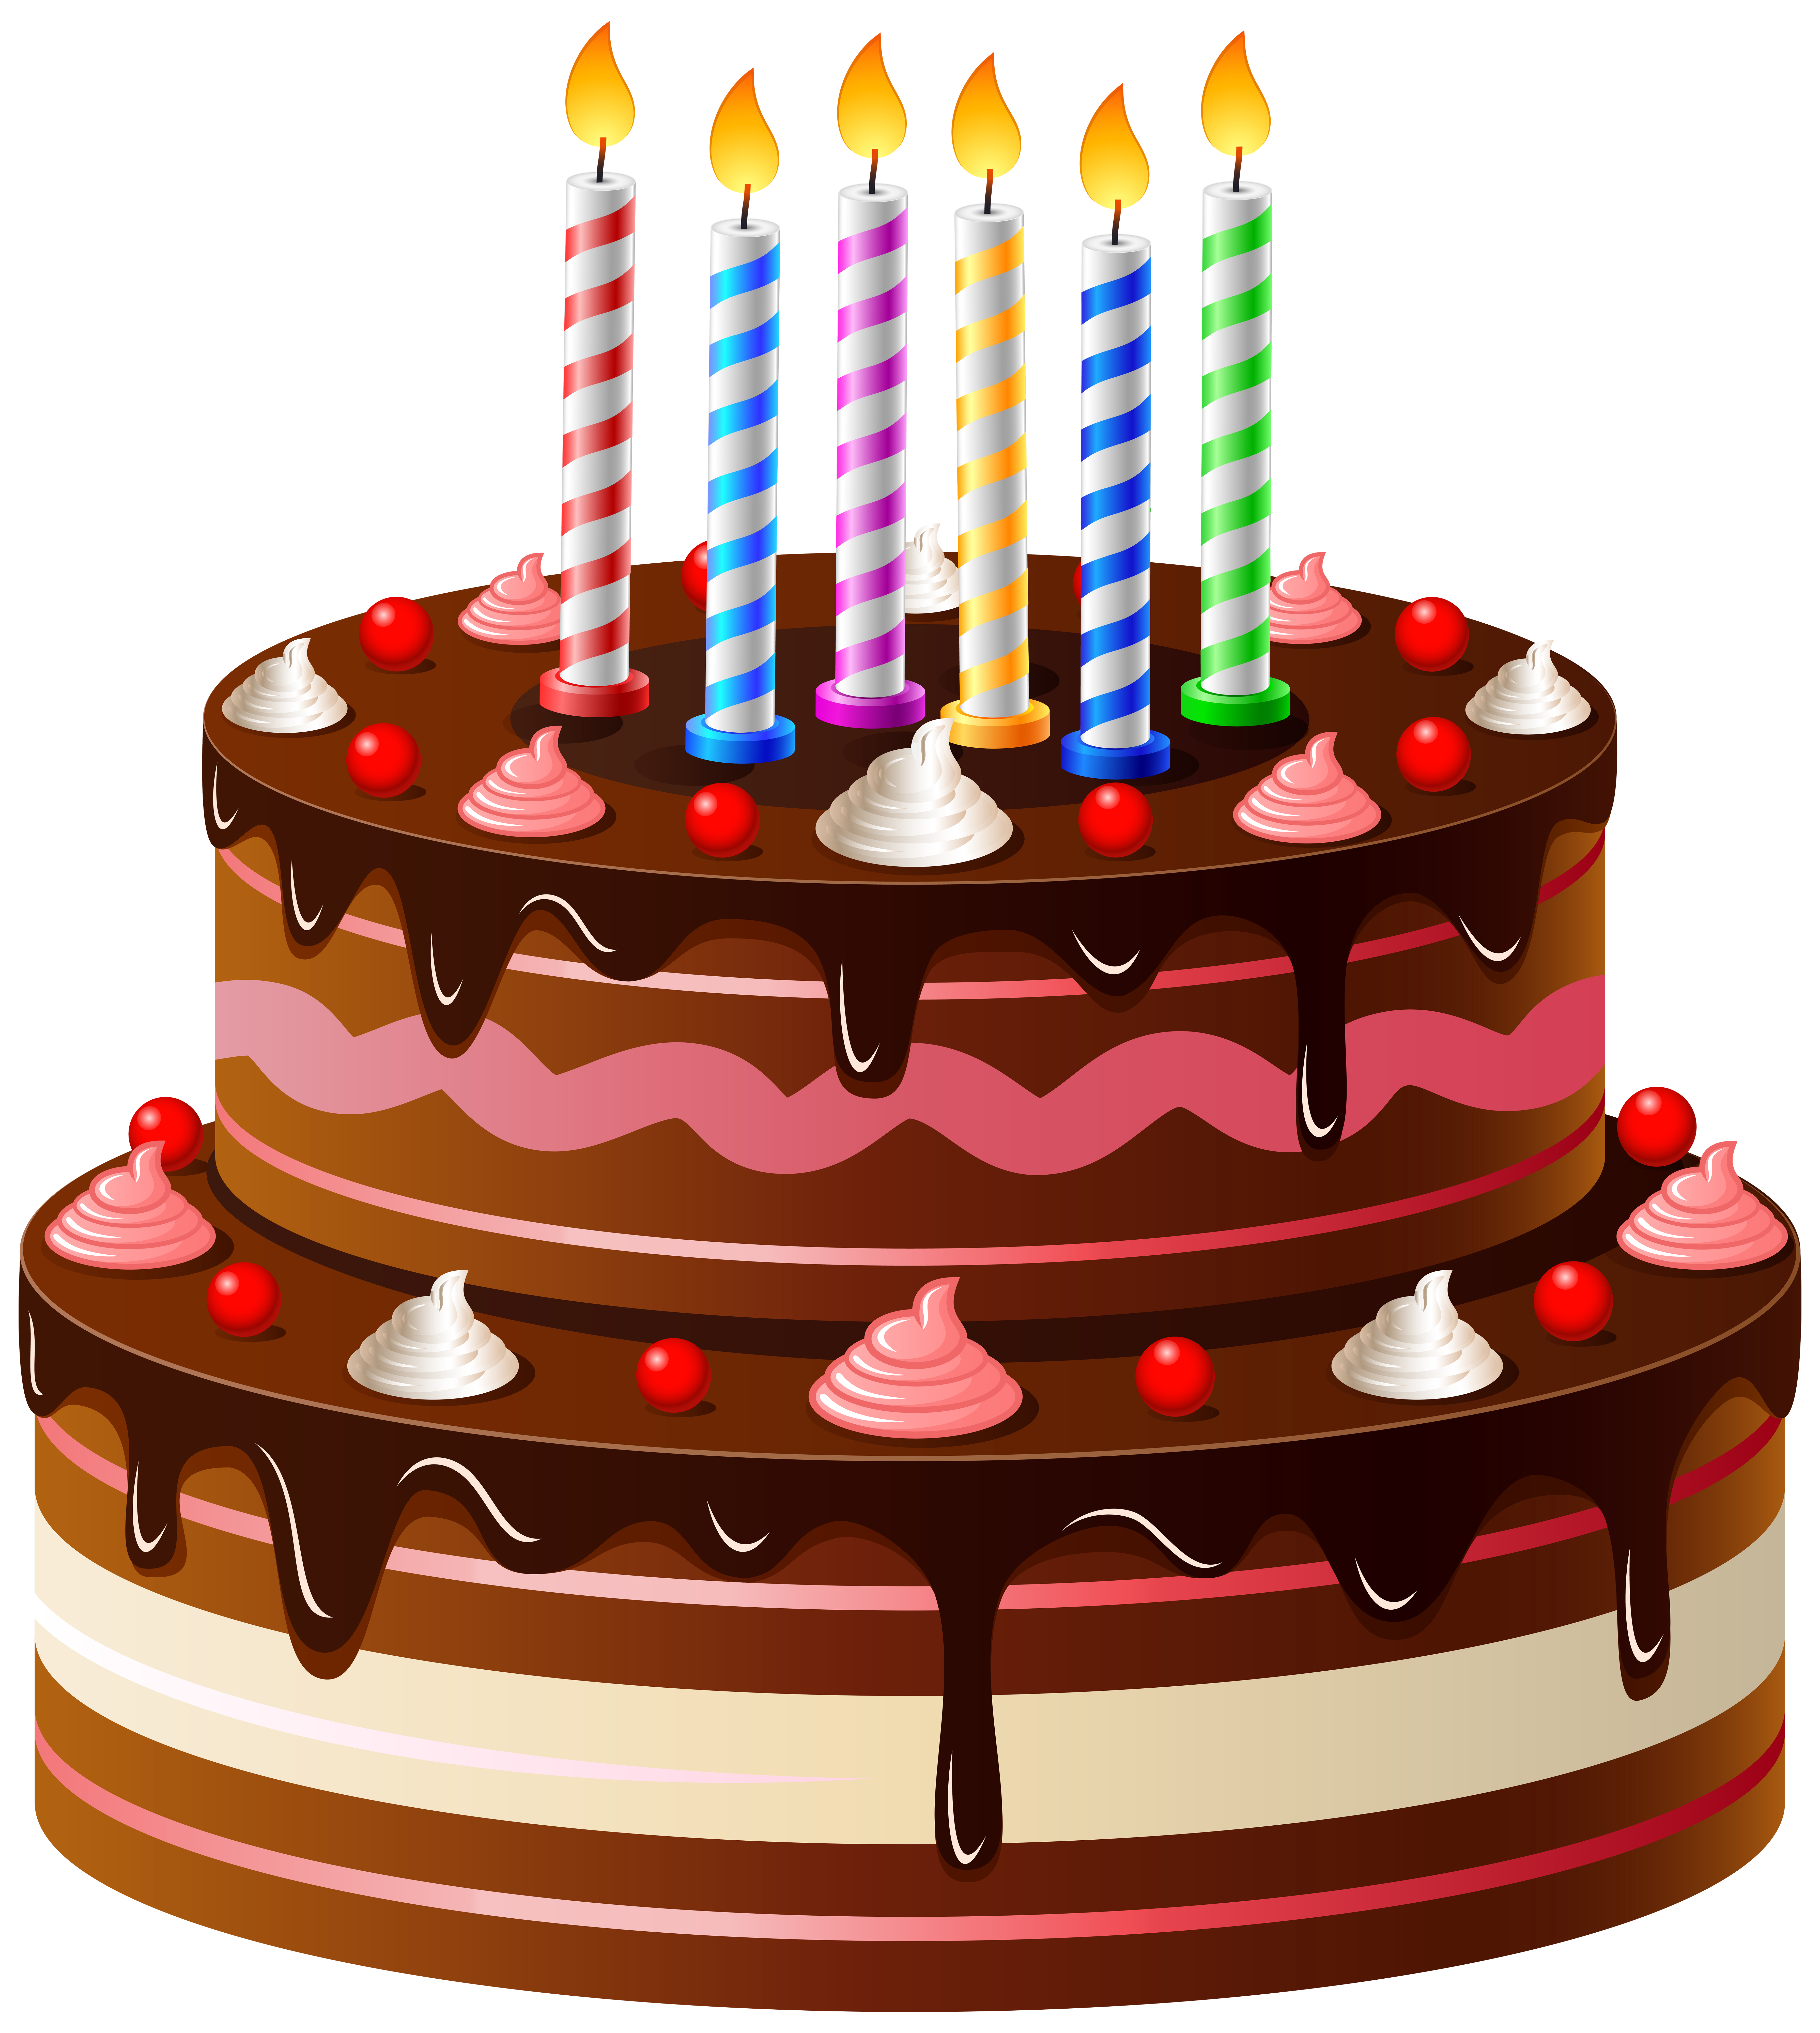 Cake Clip Art Gallery Birthday Cakes For Women Png View Full Size